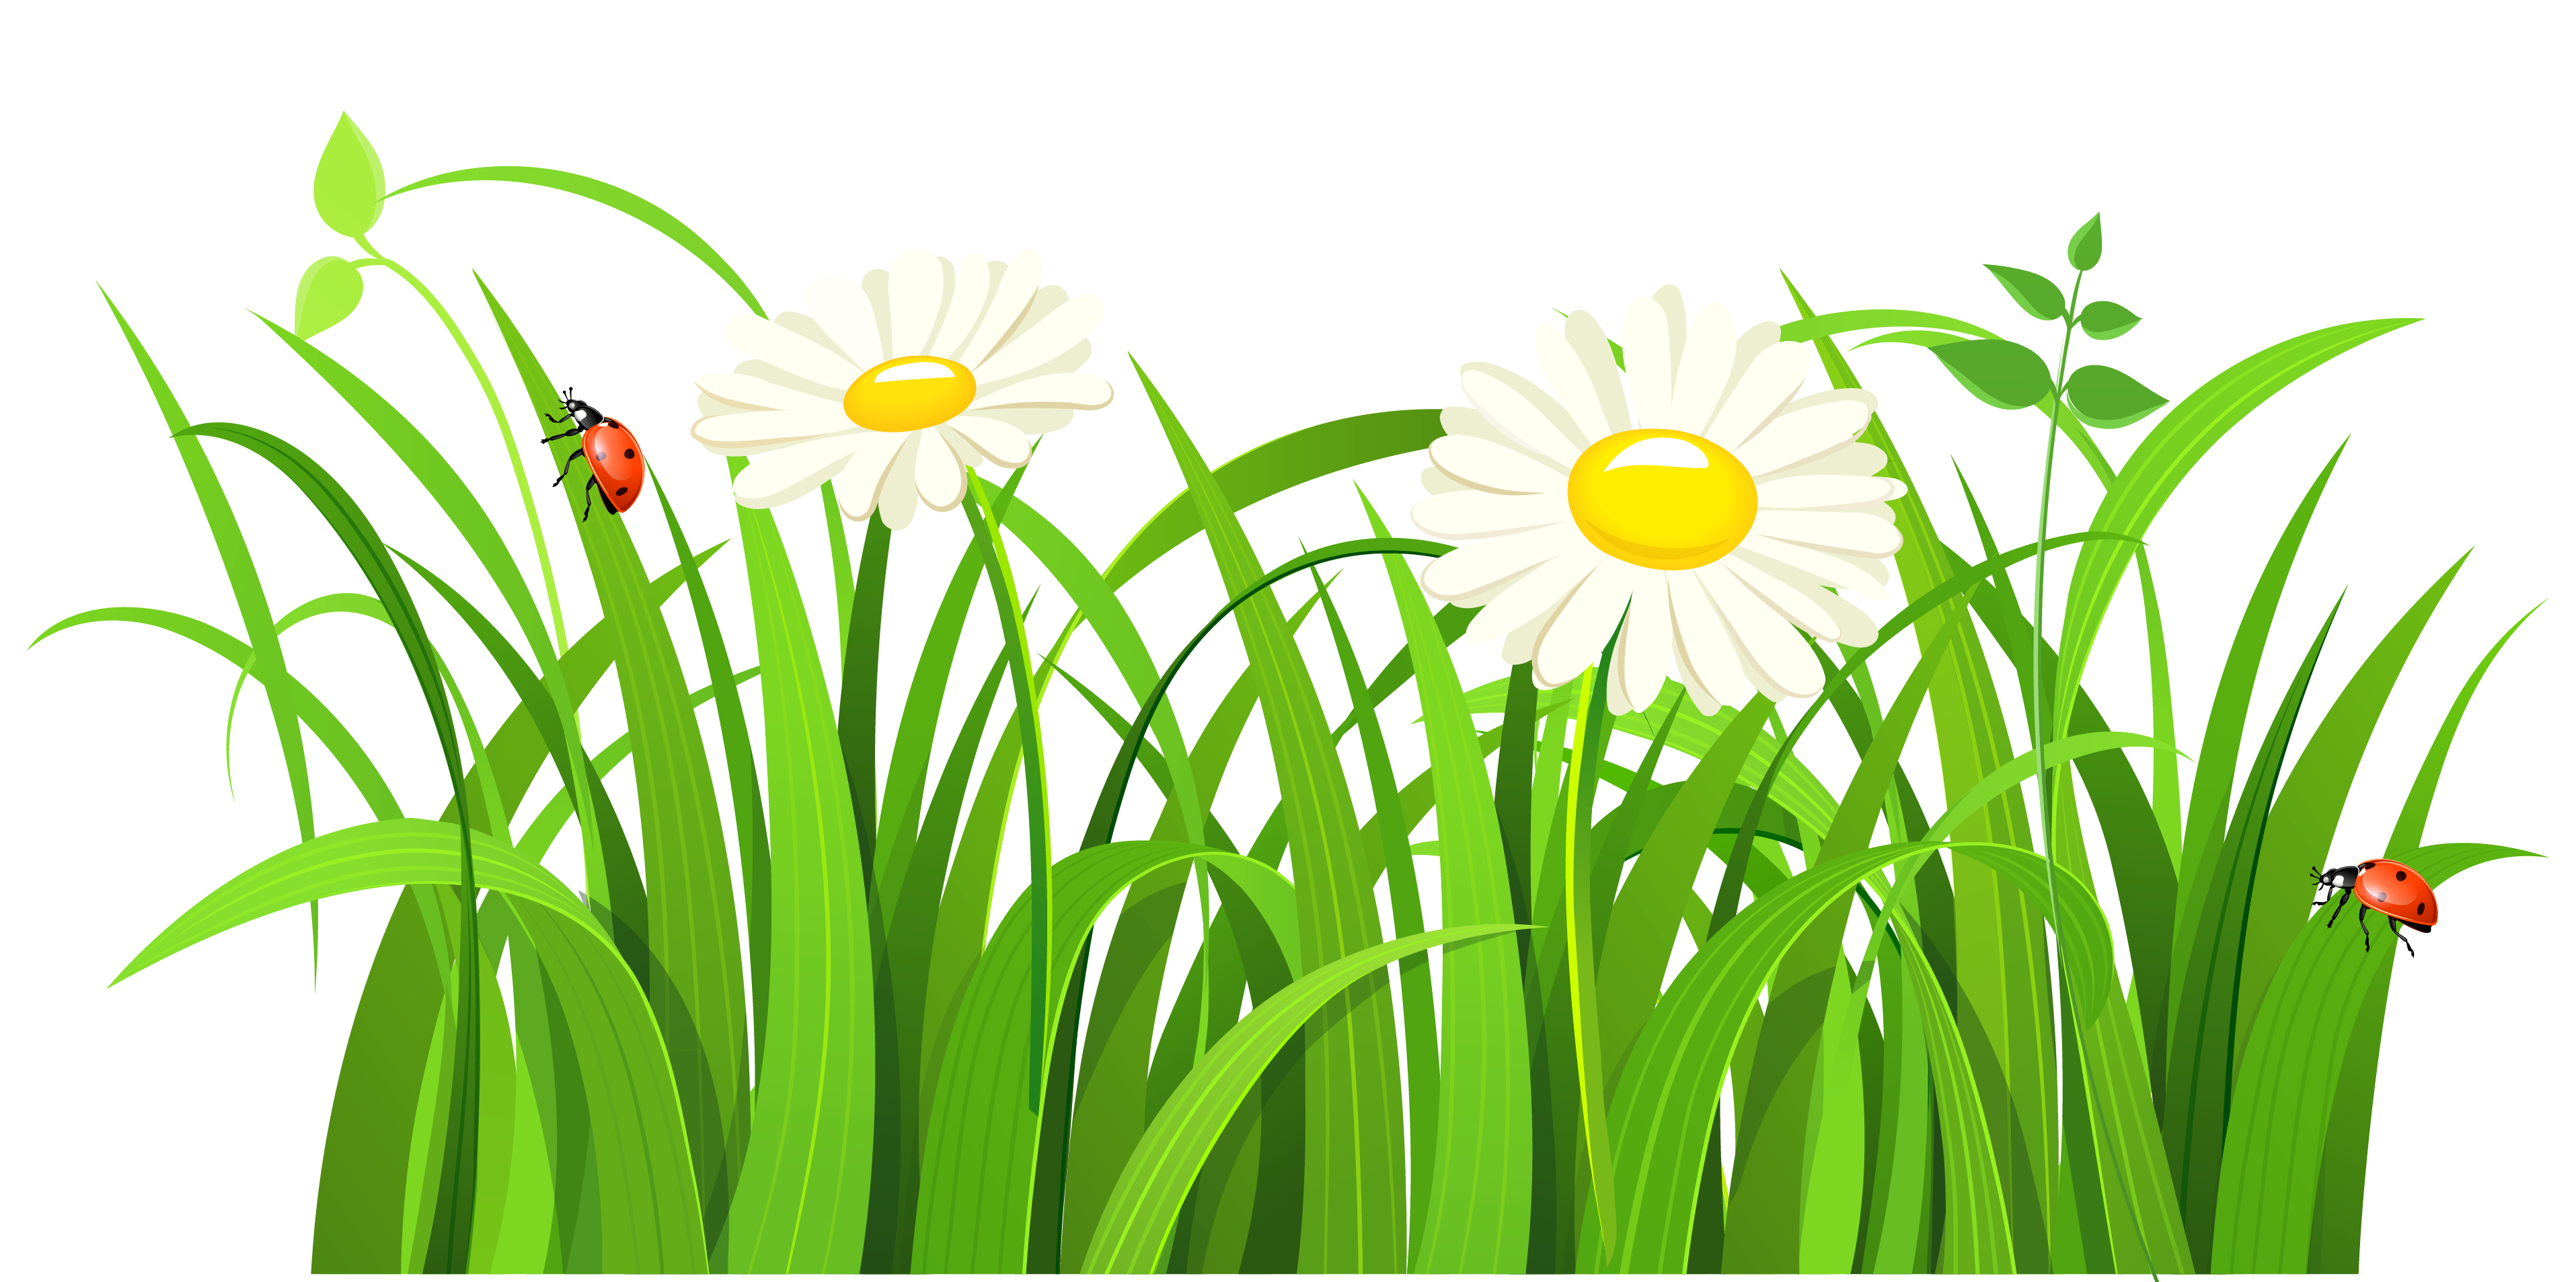 Grass clipart #3, Download drawings